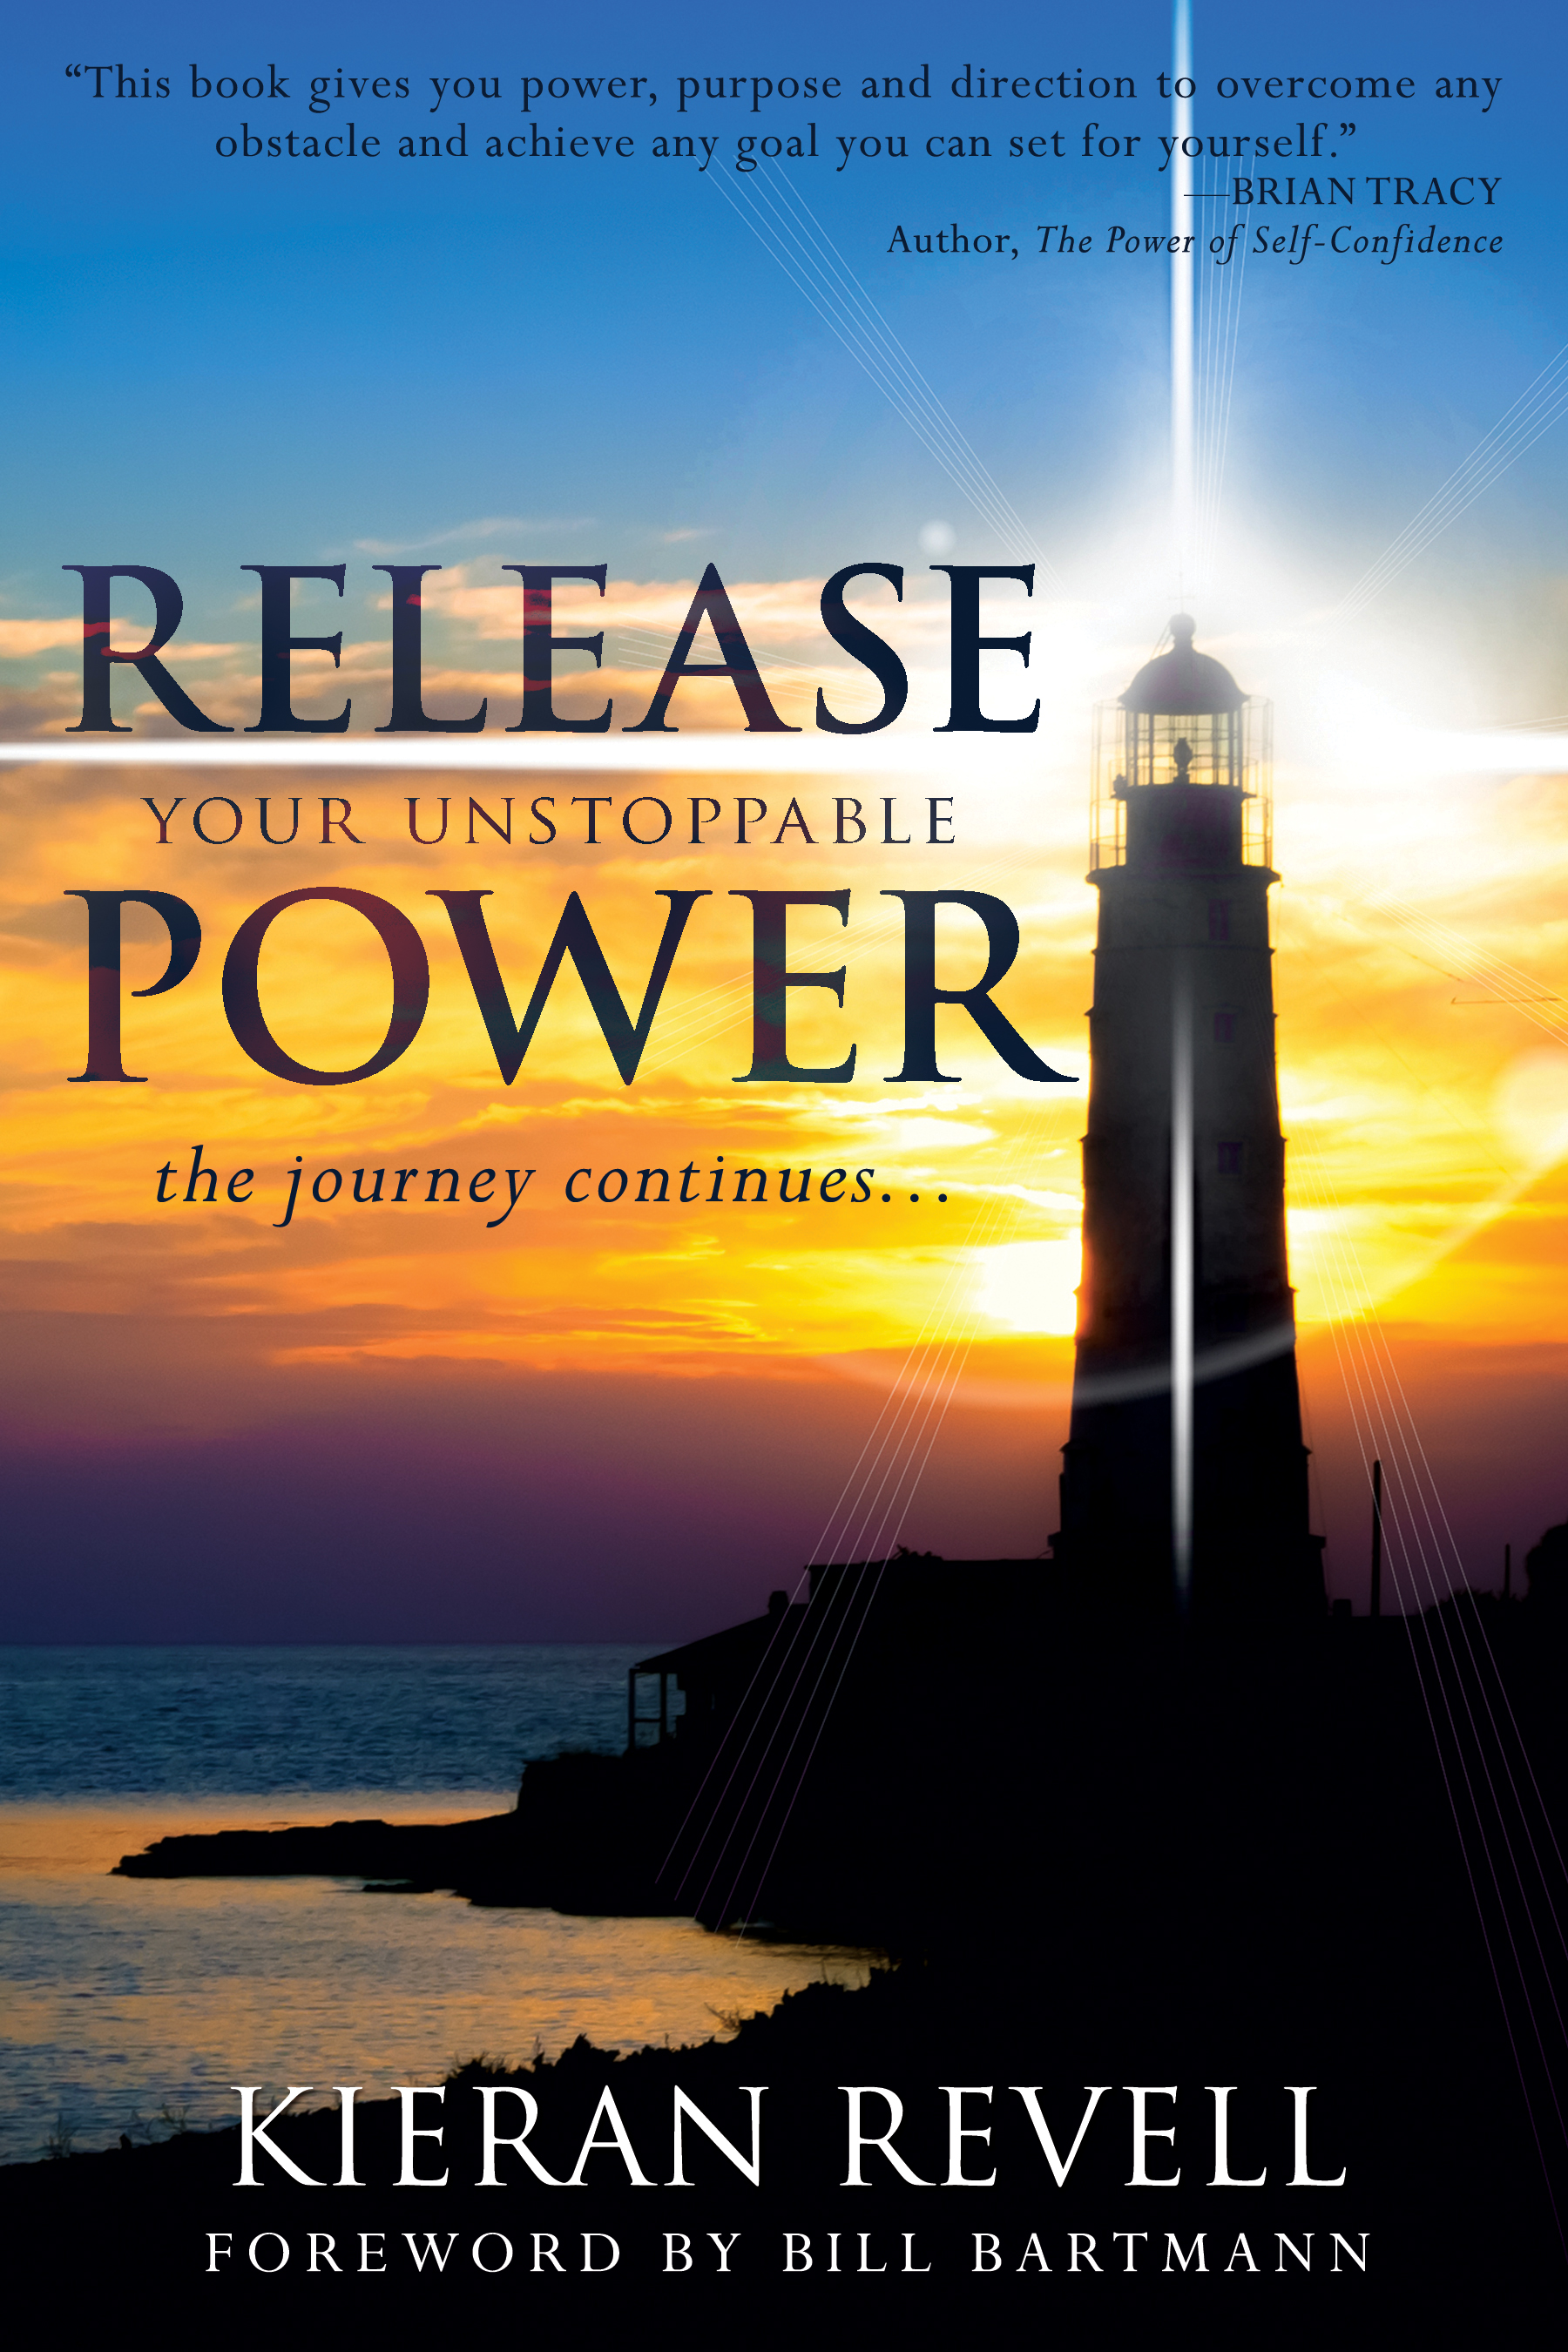 Release Your Unstoppable Power - Kieran Revell